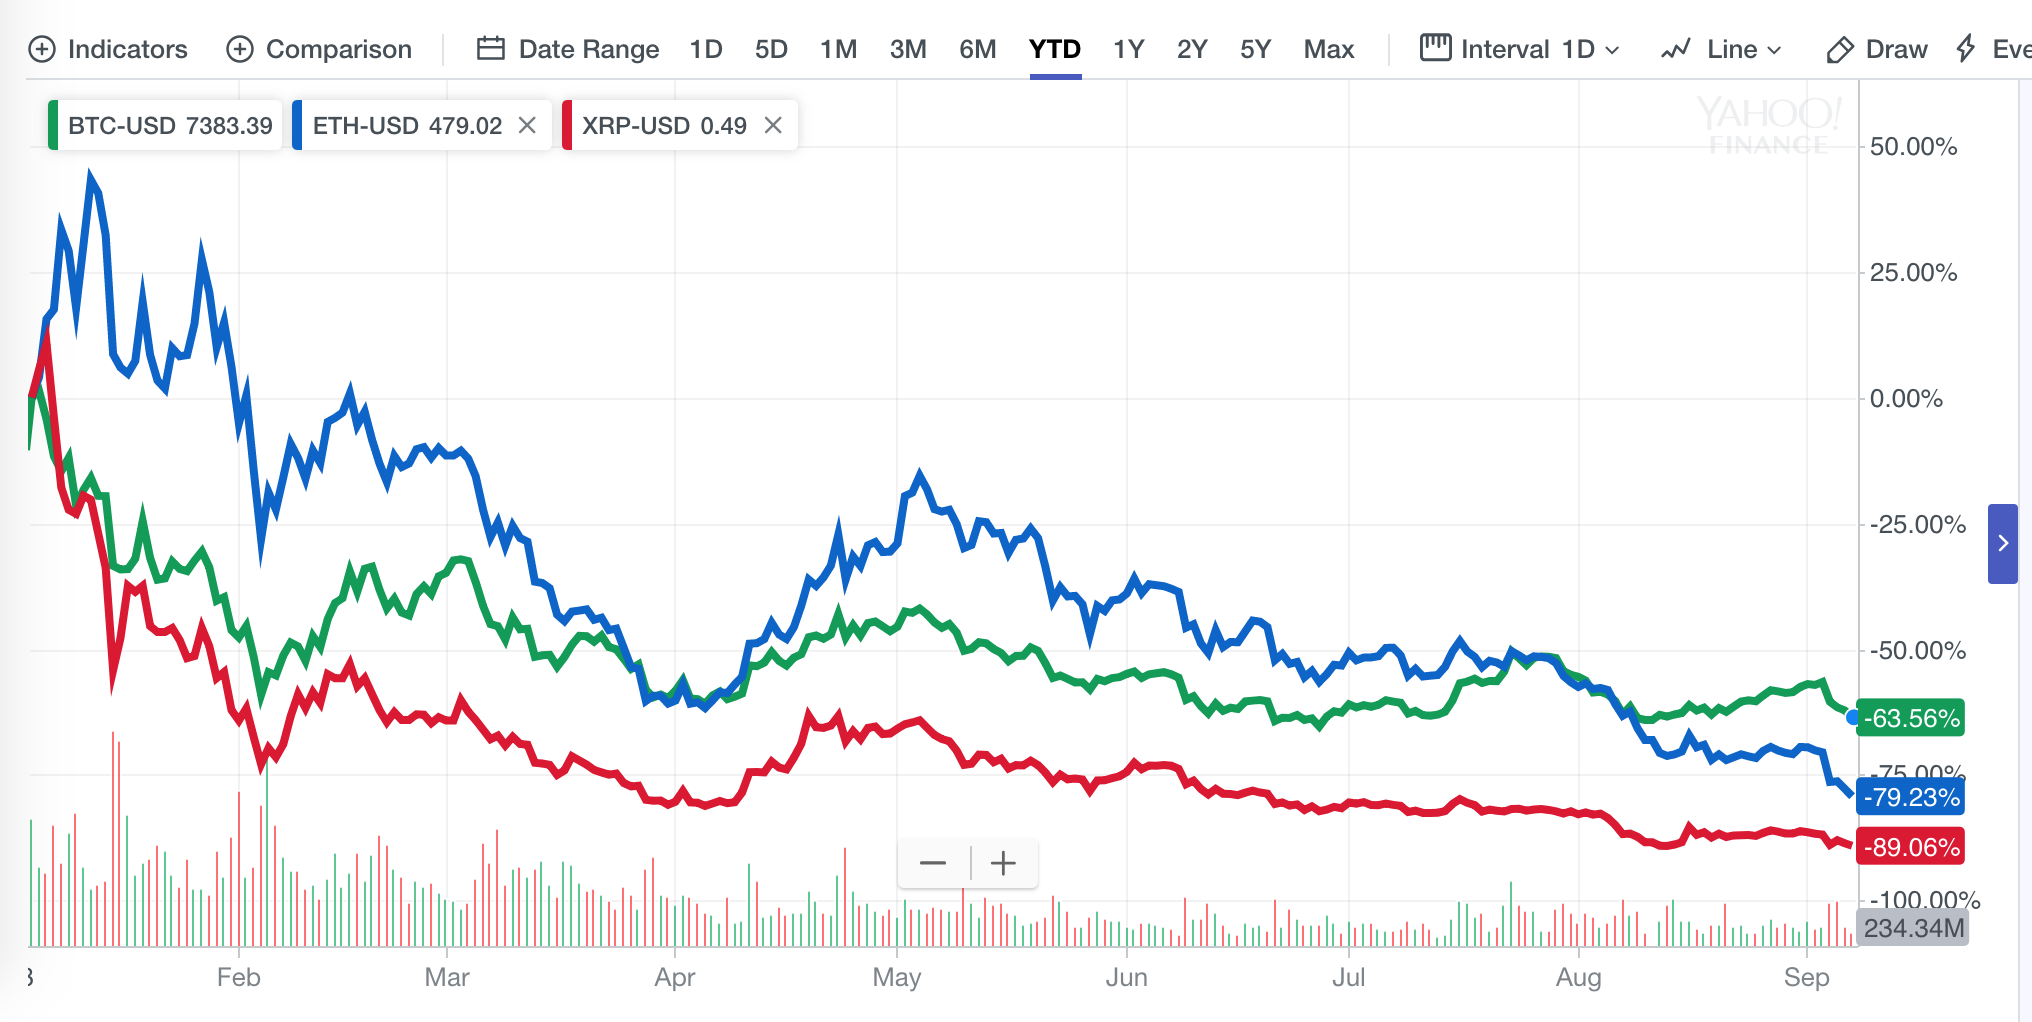 Amid 2018 crypto crash, 3 kinds of believers come into focus